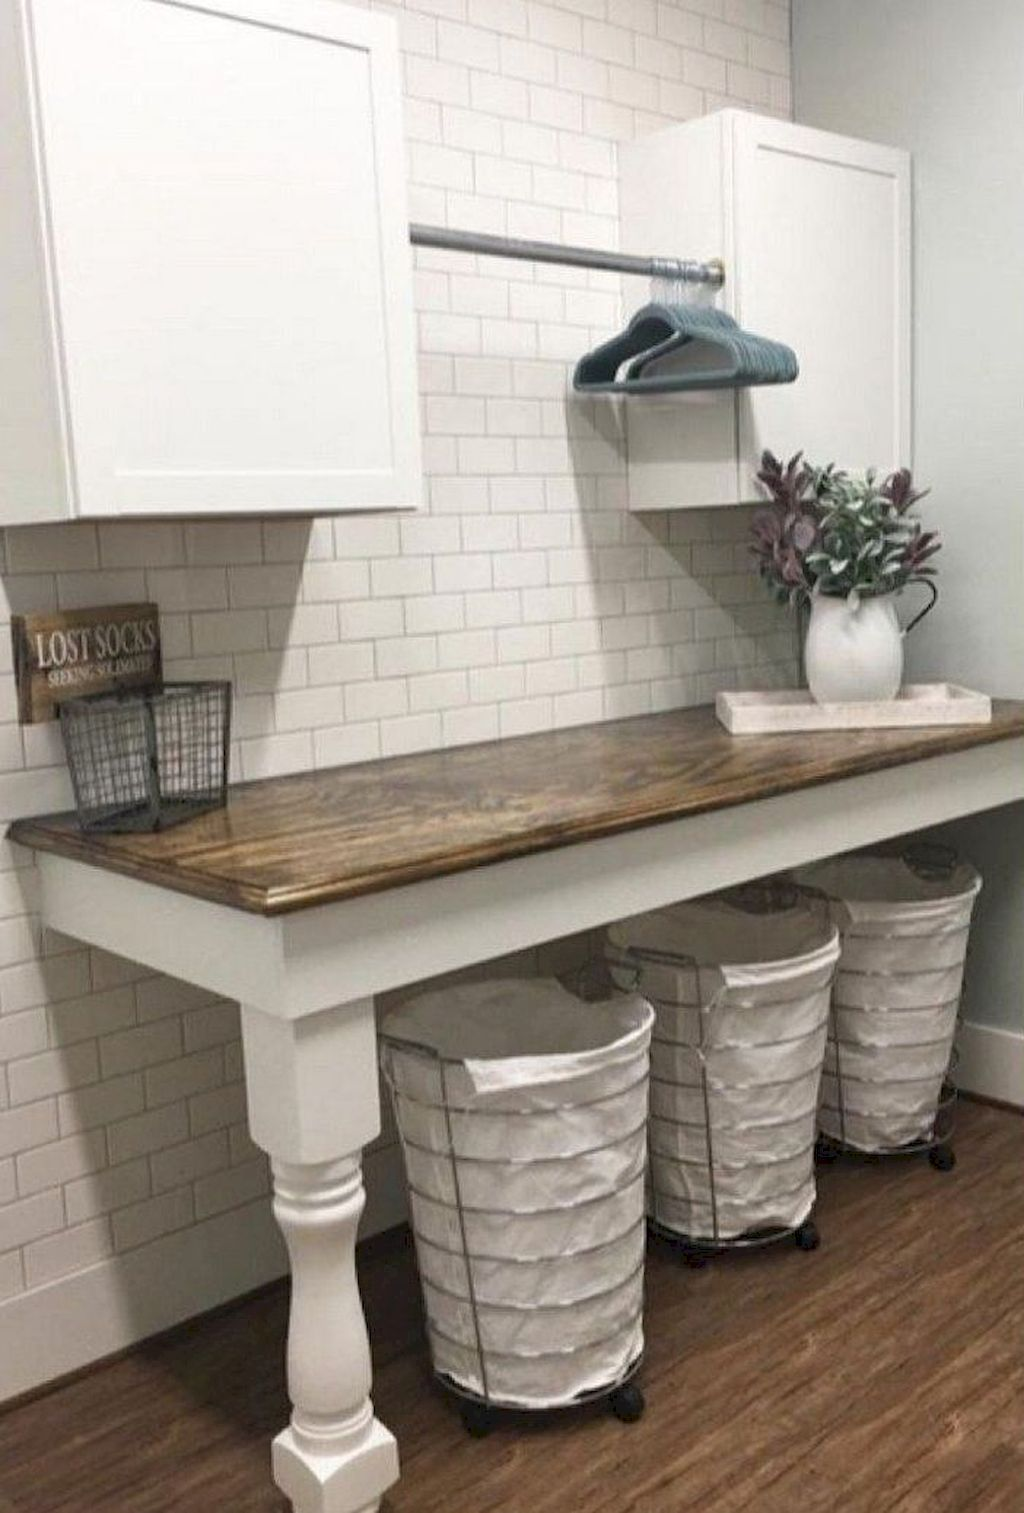 40 inspiring simple and awesome laundry room ideas in 2020 on effectively laundry room decoration ideas easy ideas to inspire you id=77391